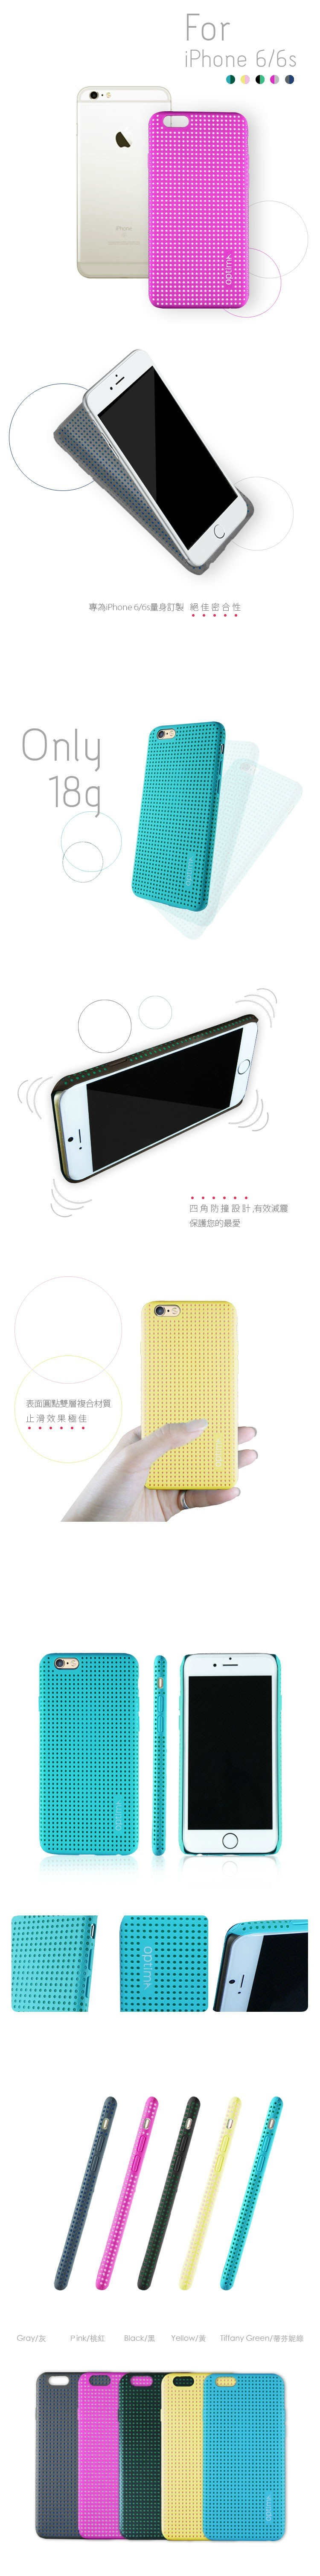 Optima iPhone6/6s Dazzle Case 止滑背蓋-鐵灰